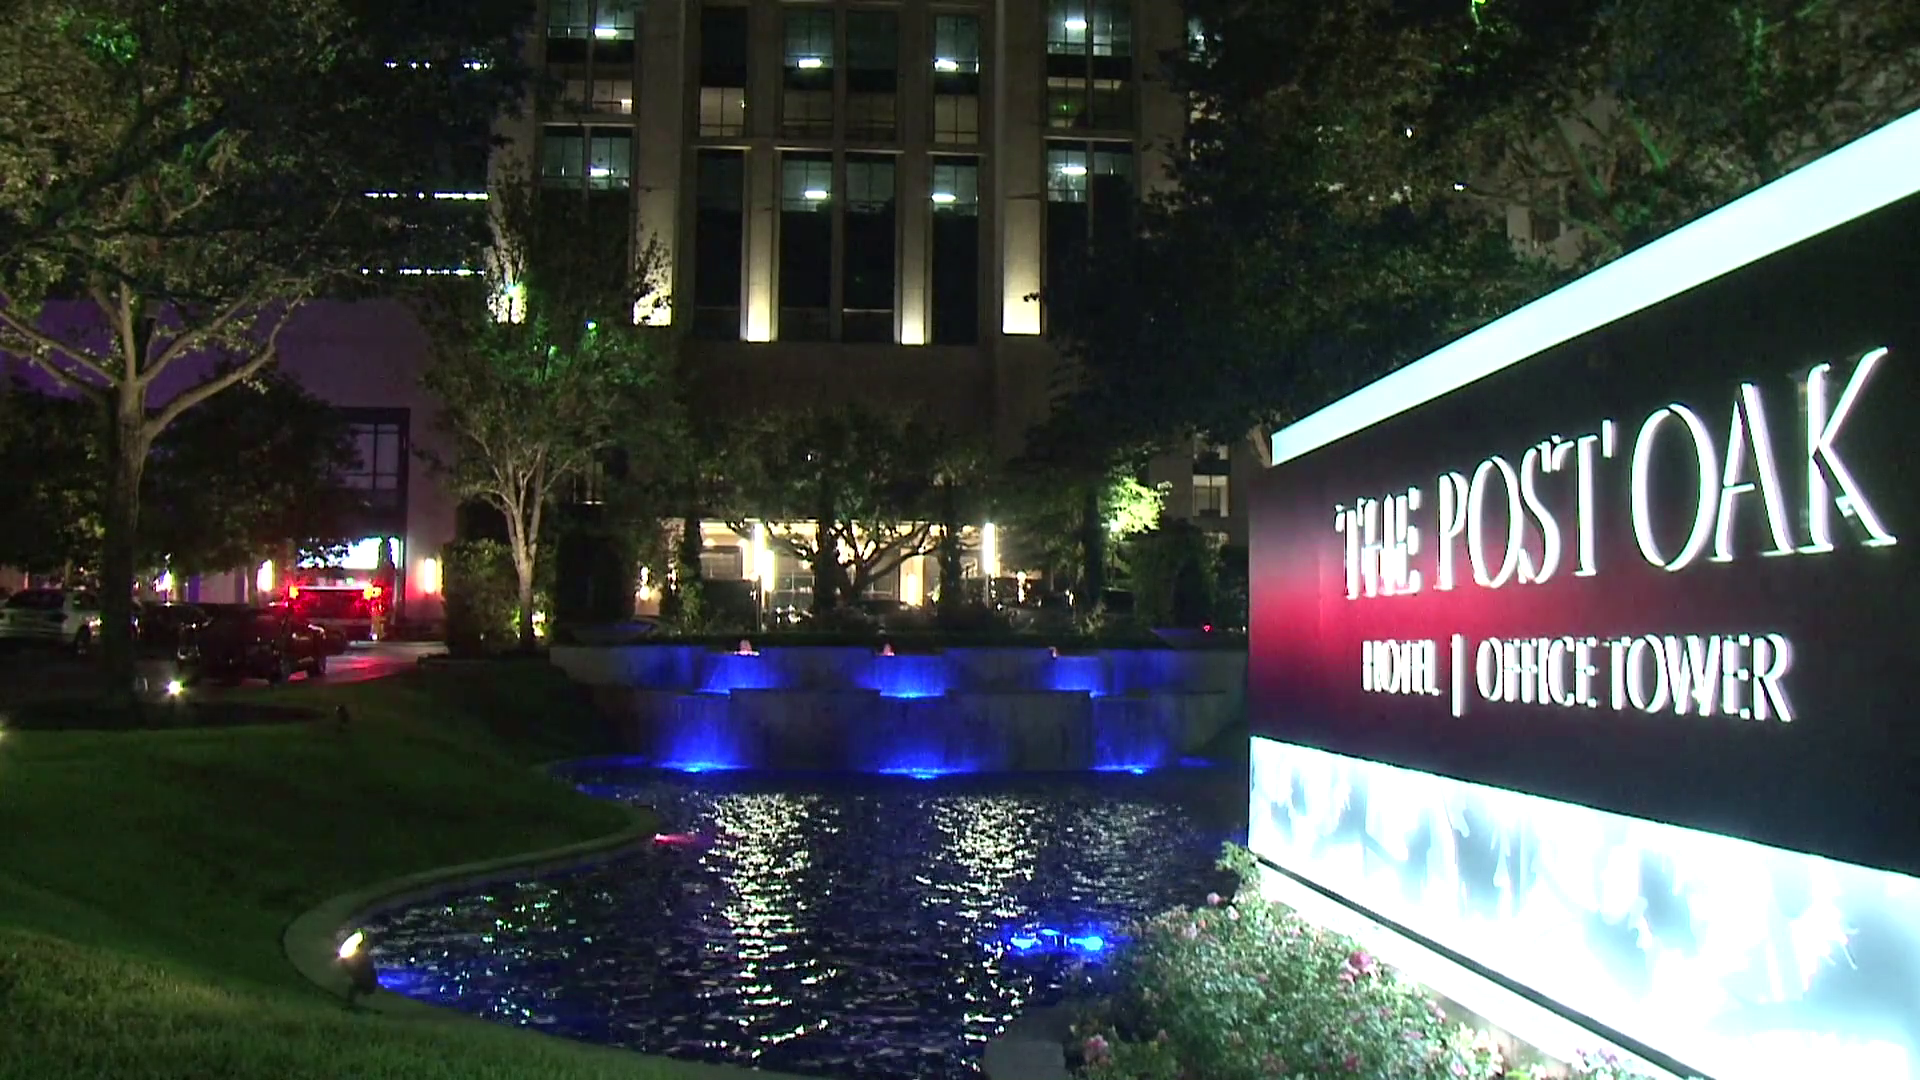 Suspect wounded 'complete stranger' in Post Oak Hotel shooting, prosecutors say